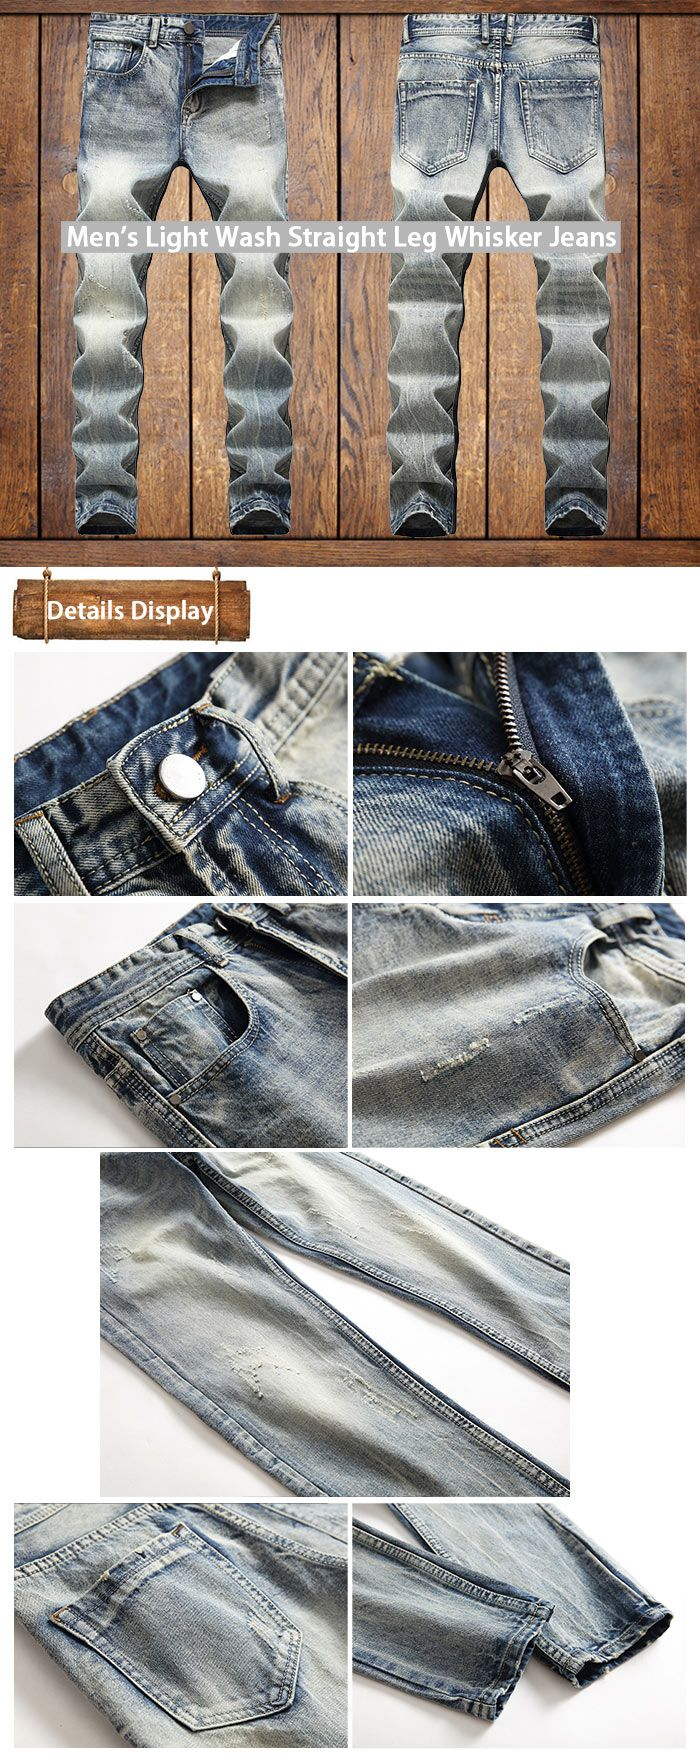 Light Wash Straight Leg Whisker Jeans